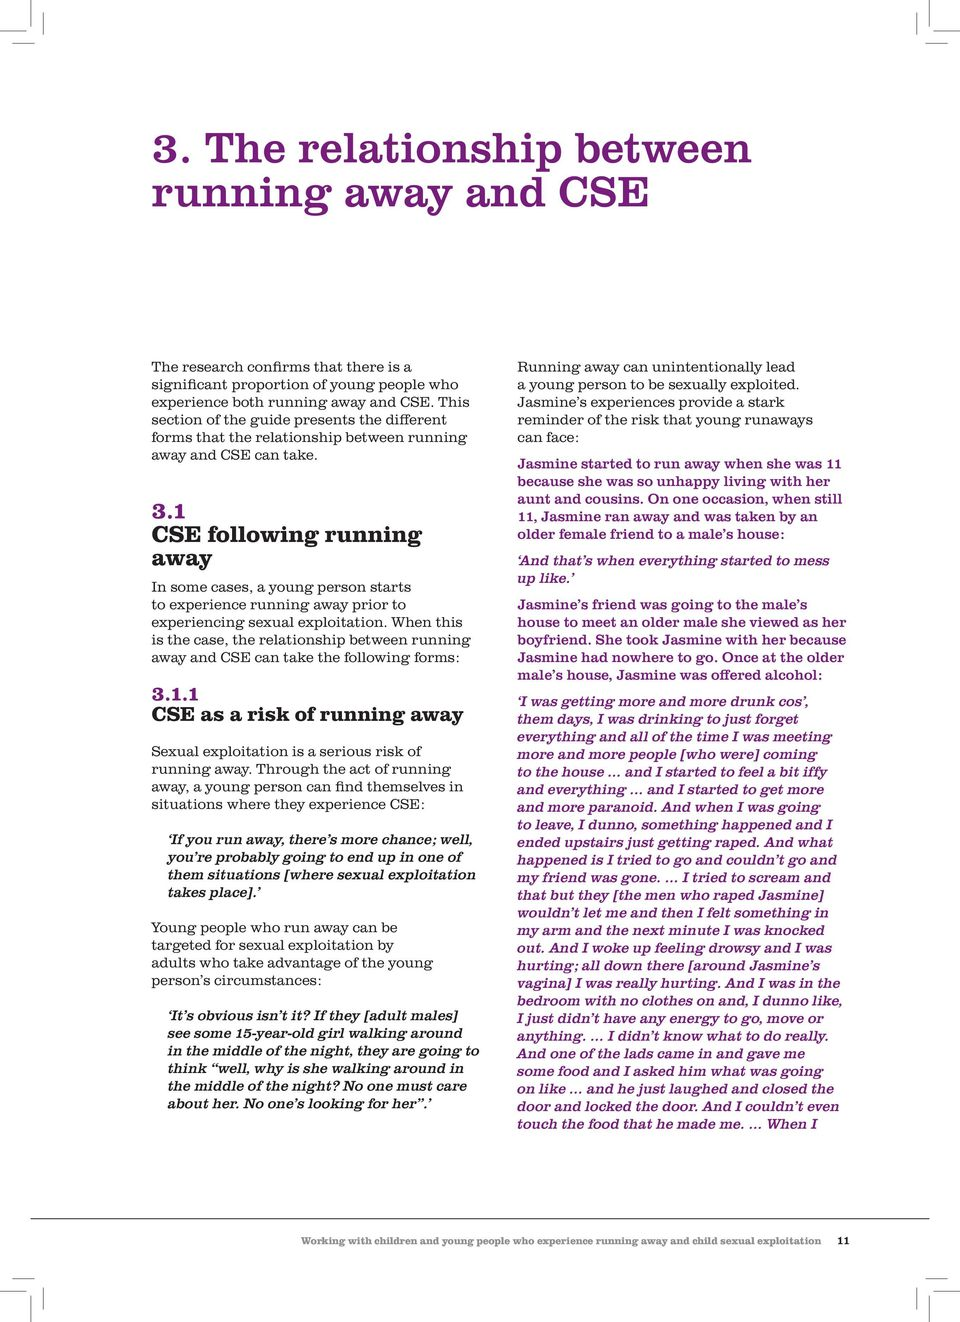 1 CSE following running away In some cases, a young person starts to experience running away prior to experiencing sexual exploitation.